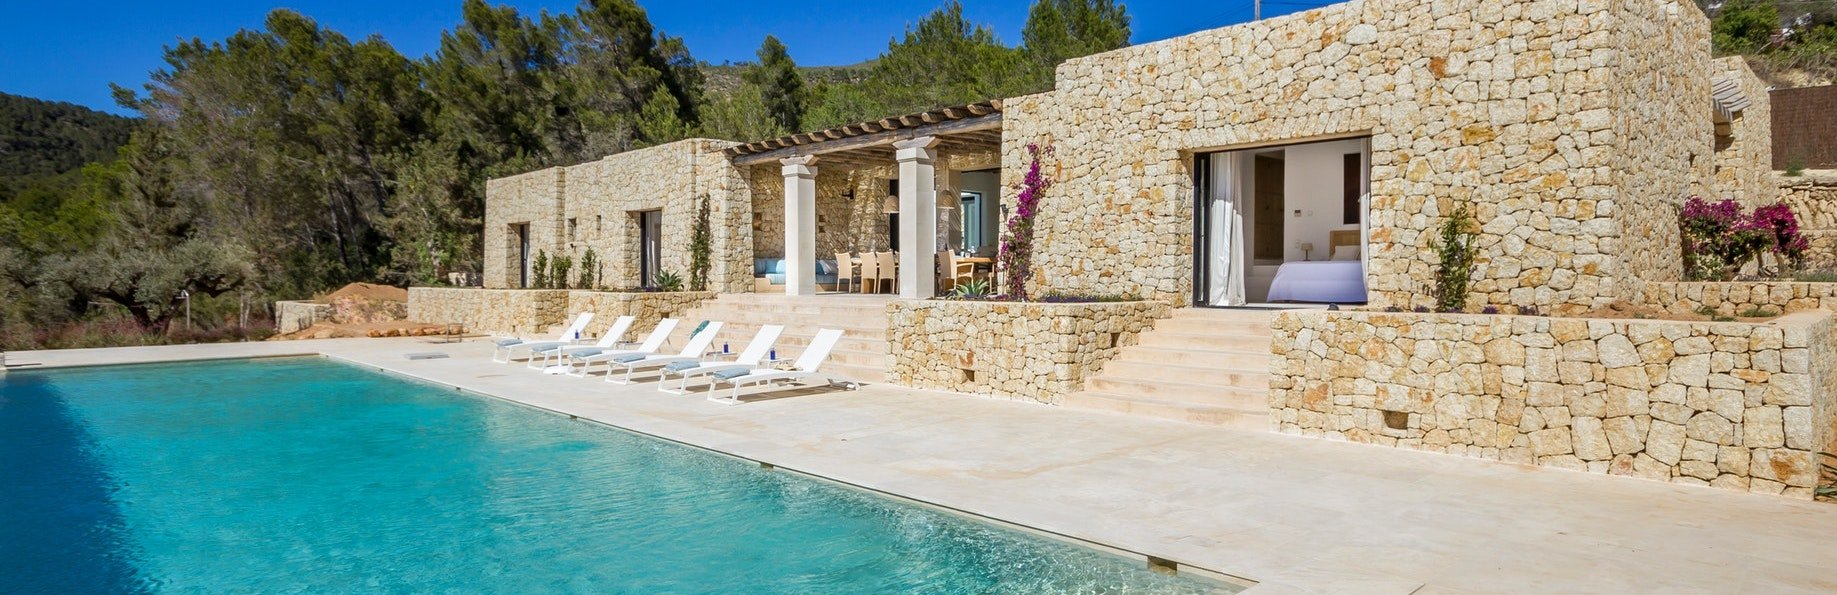 Ibiza villas and concierge summer 2018